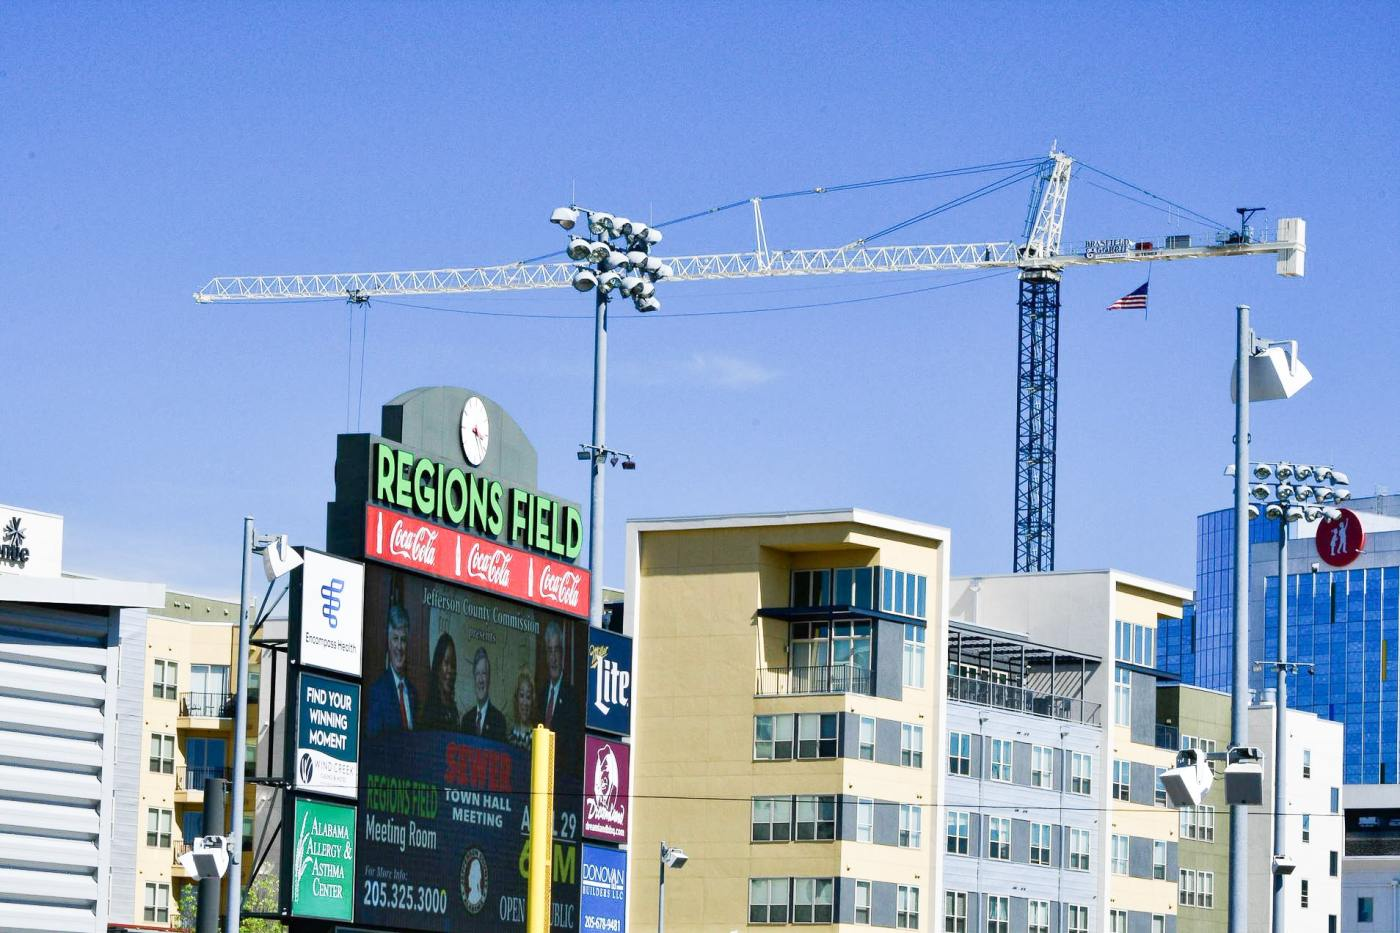 Cranes are a common sight in Parkside as the area continues to grow! Photo by Bham Now